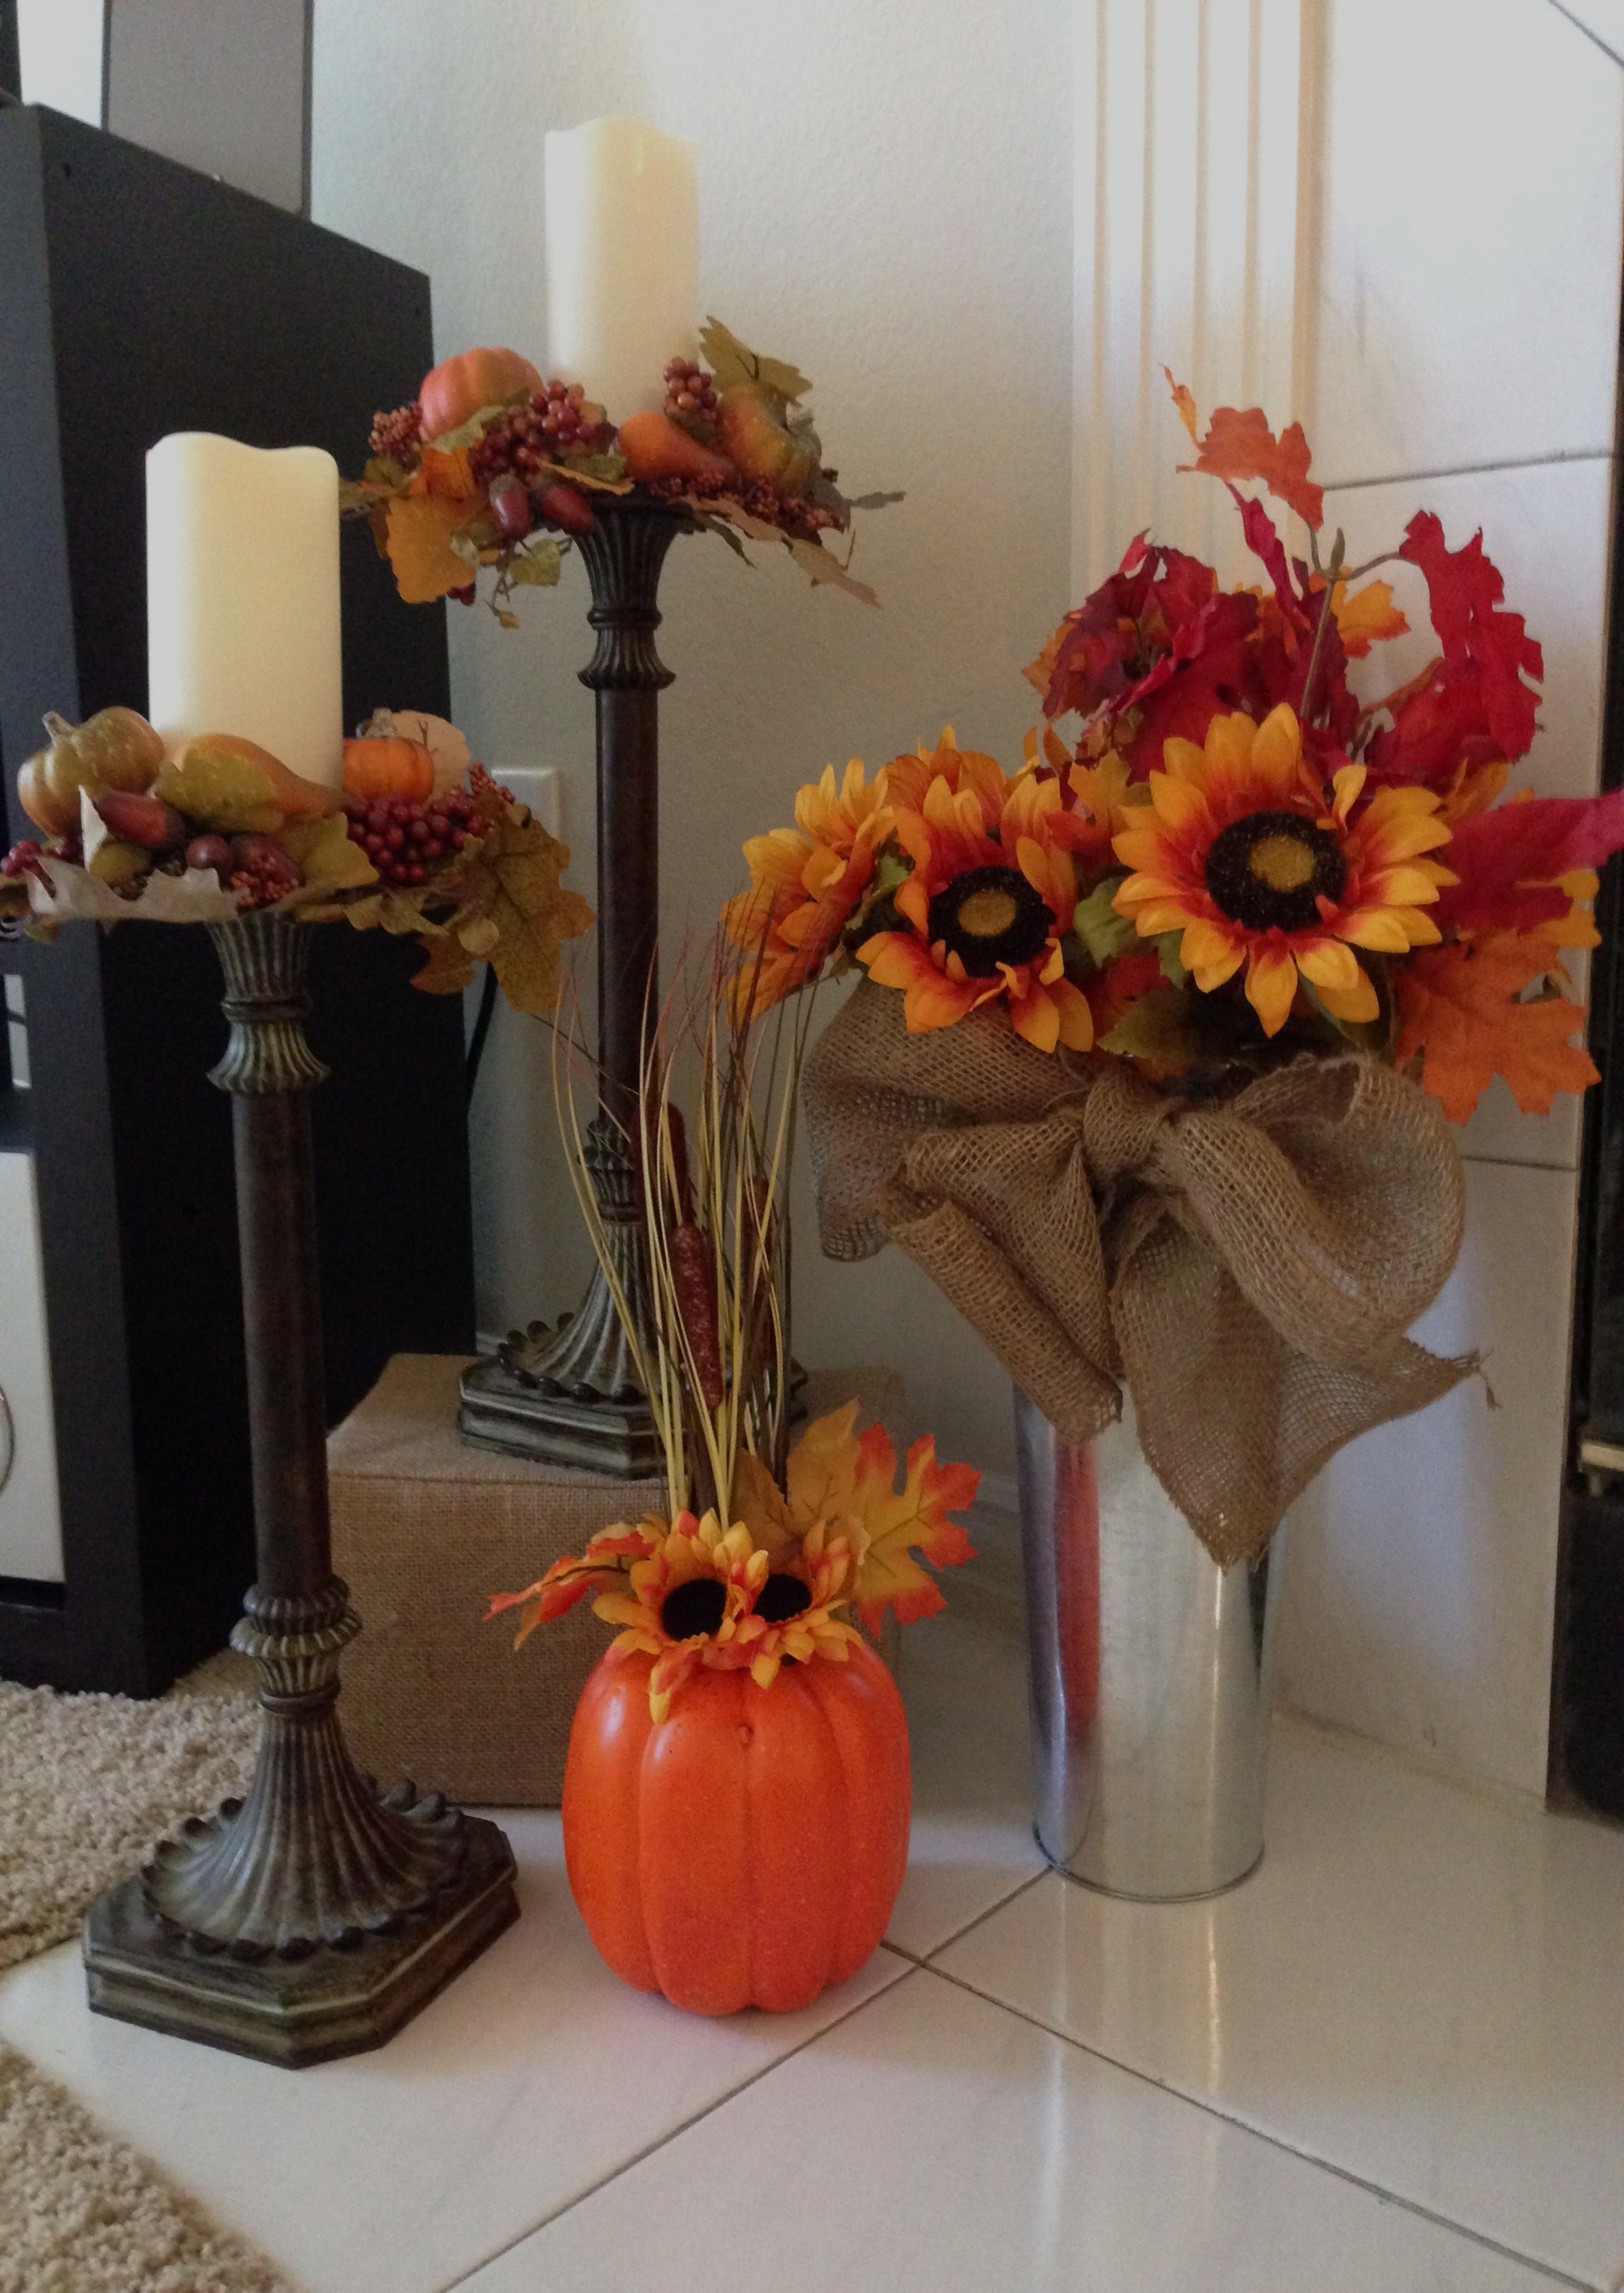 hobby lobby flower vases of thanksgiving decorations canada fresh home design ideas intended for fall decor from walmart and hobby lobby